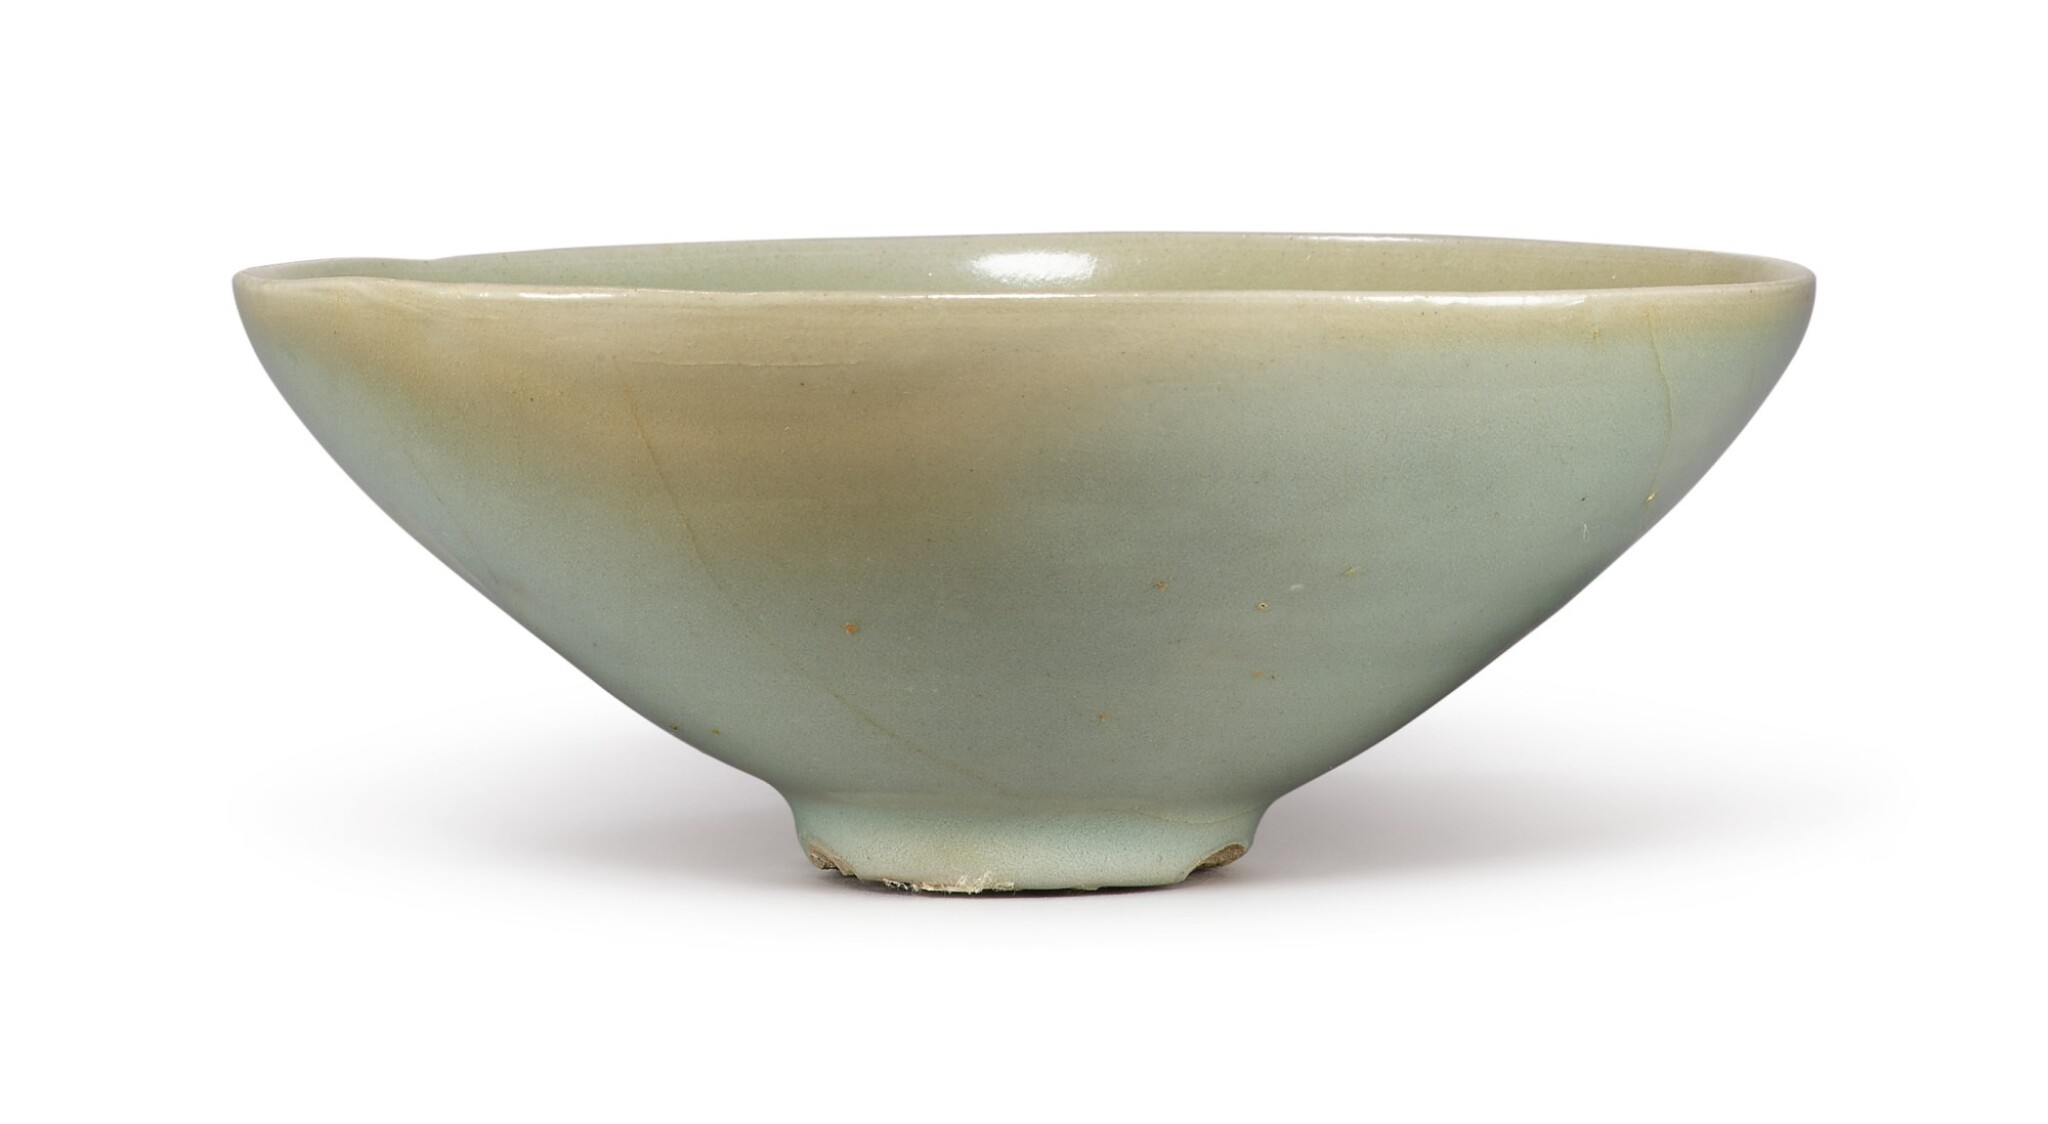 View 1 of Lot 1070.  A CARVED CELADON-GLAZED BOWL,  KOREA, GORYEO DYNASTY, 13TH / 14TH CENTURY.